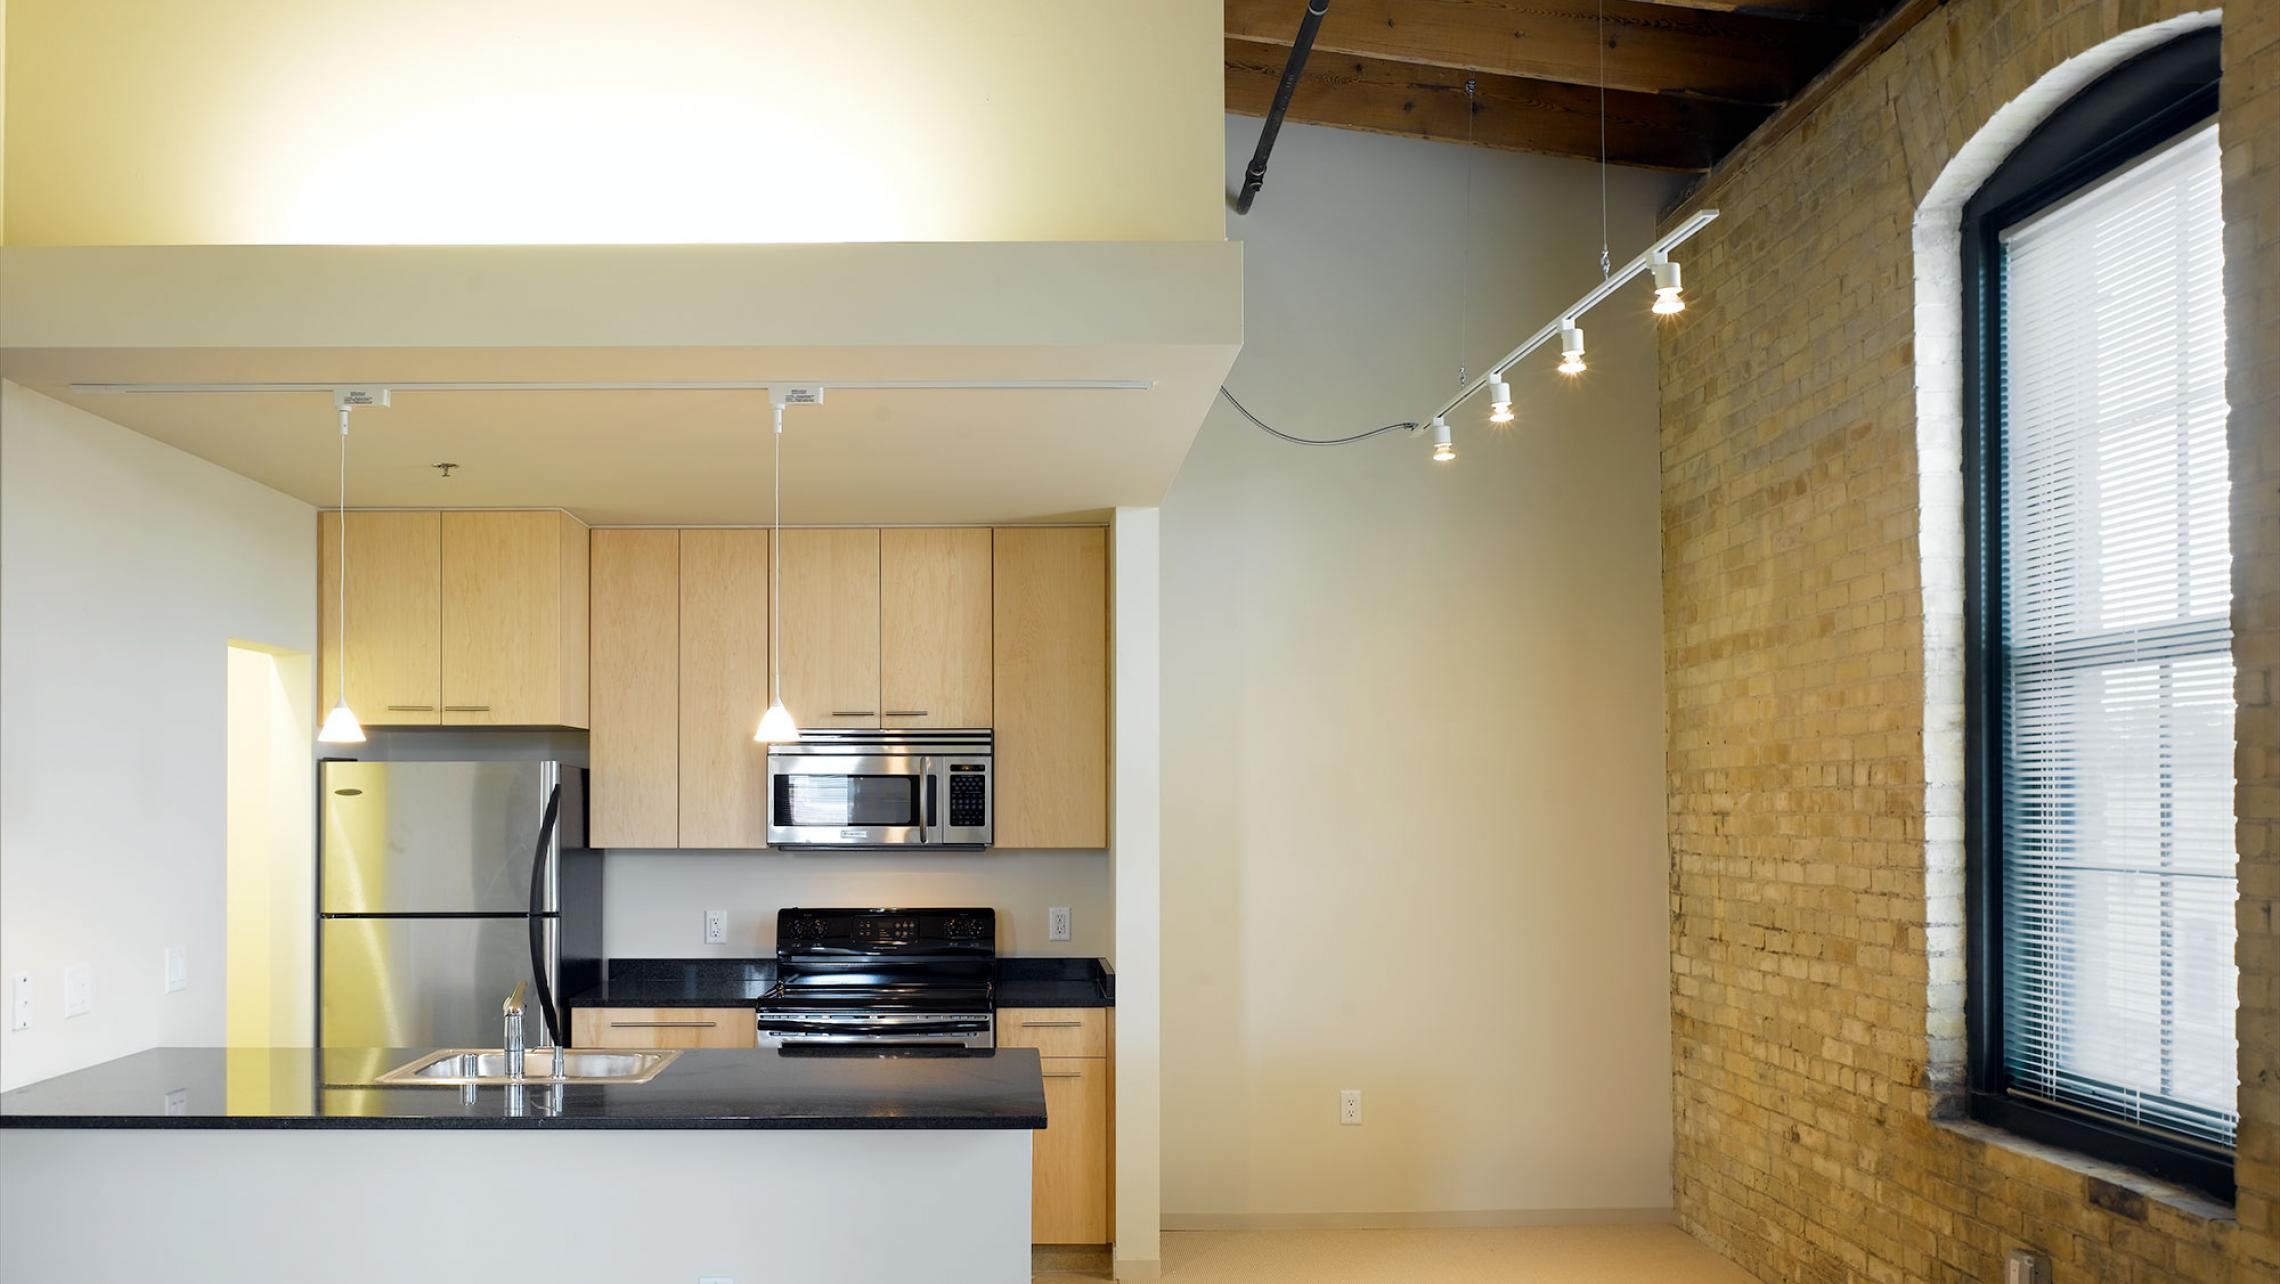 ULI Tobacco Loft Apartments - Kitchen Living Area with Exposed Brick